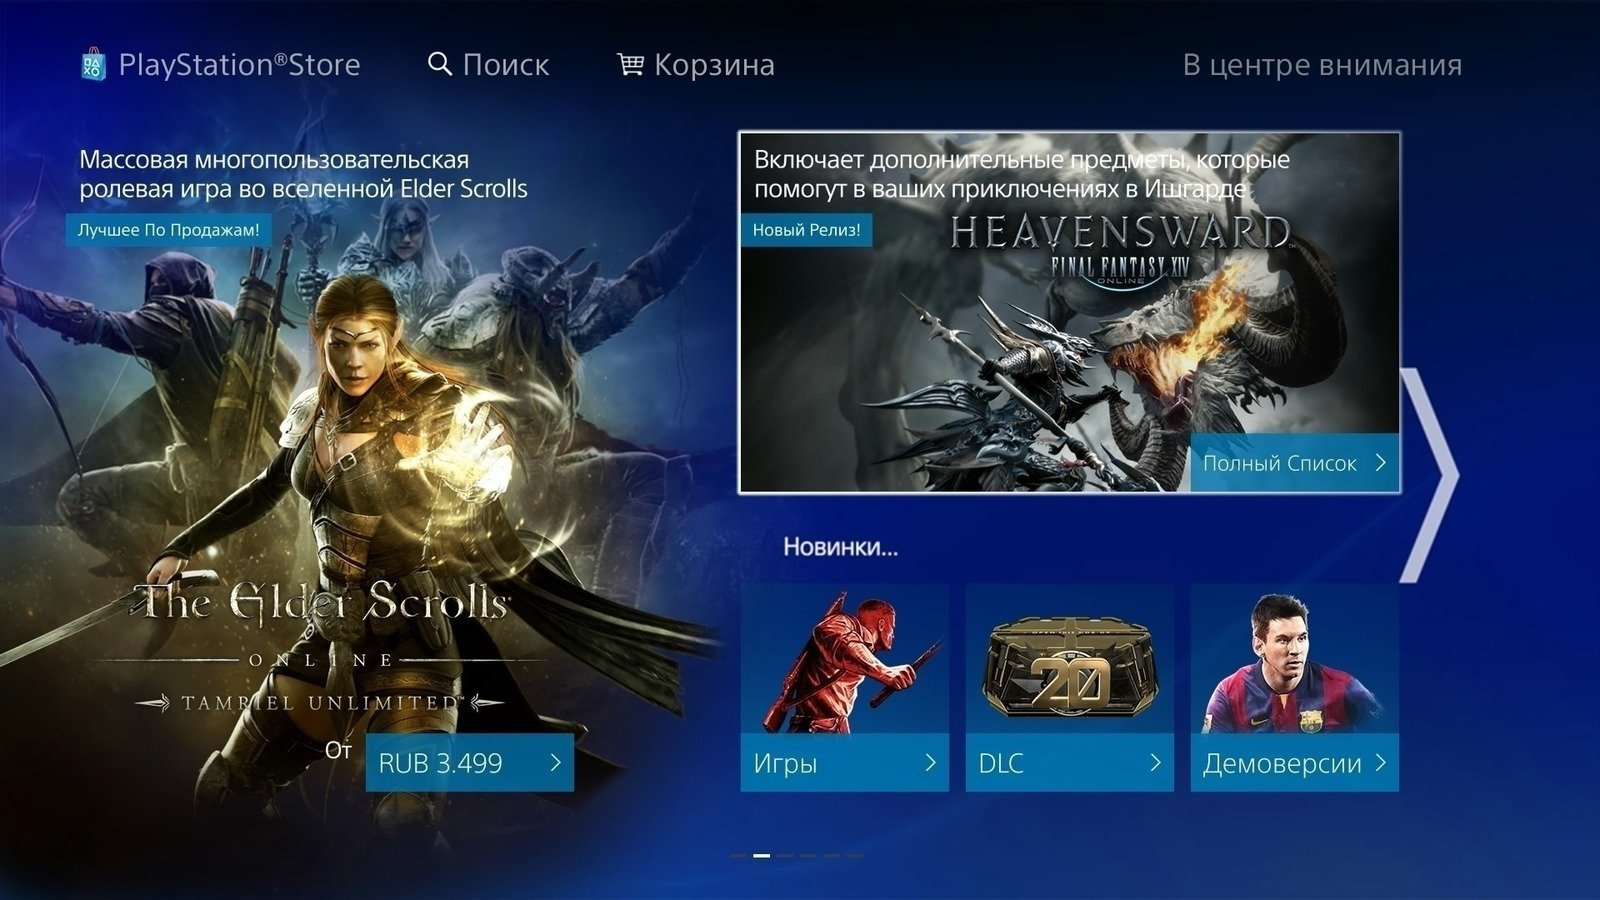 Please add the heavensward on russian playstation store 183 change org